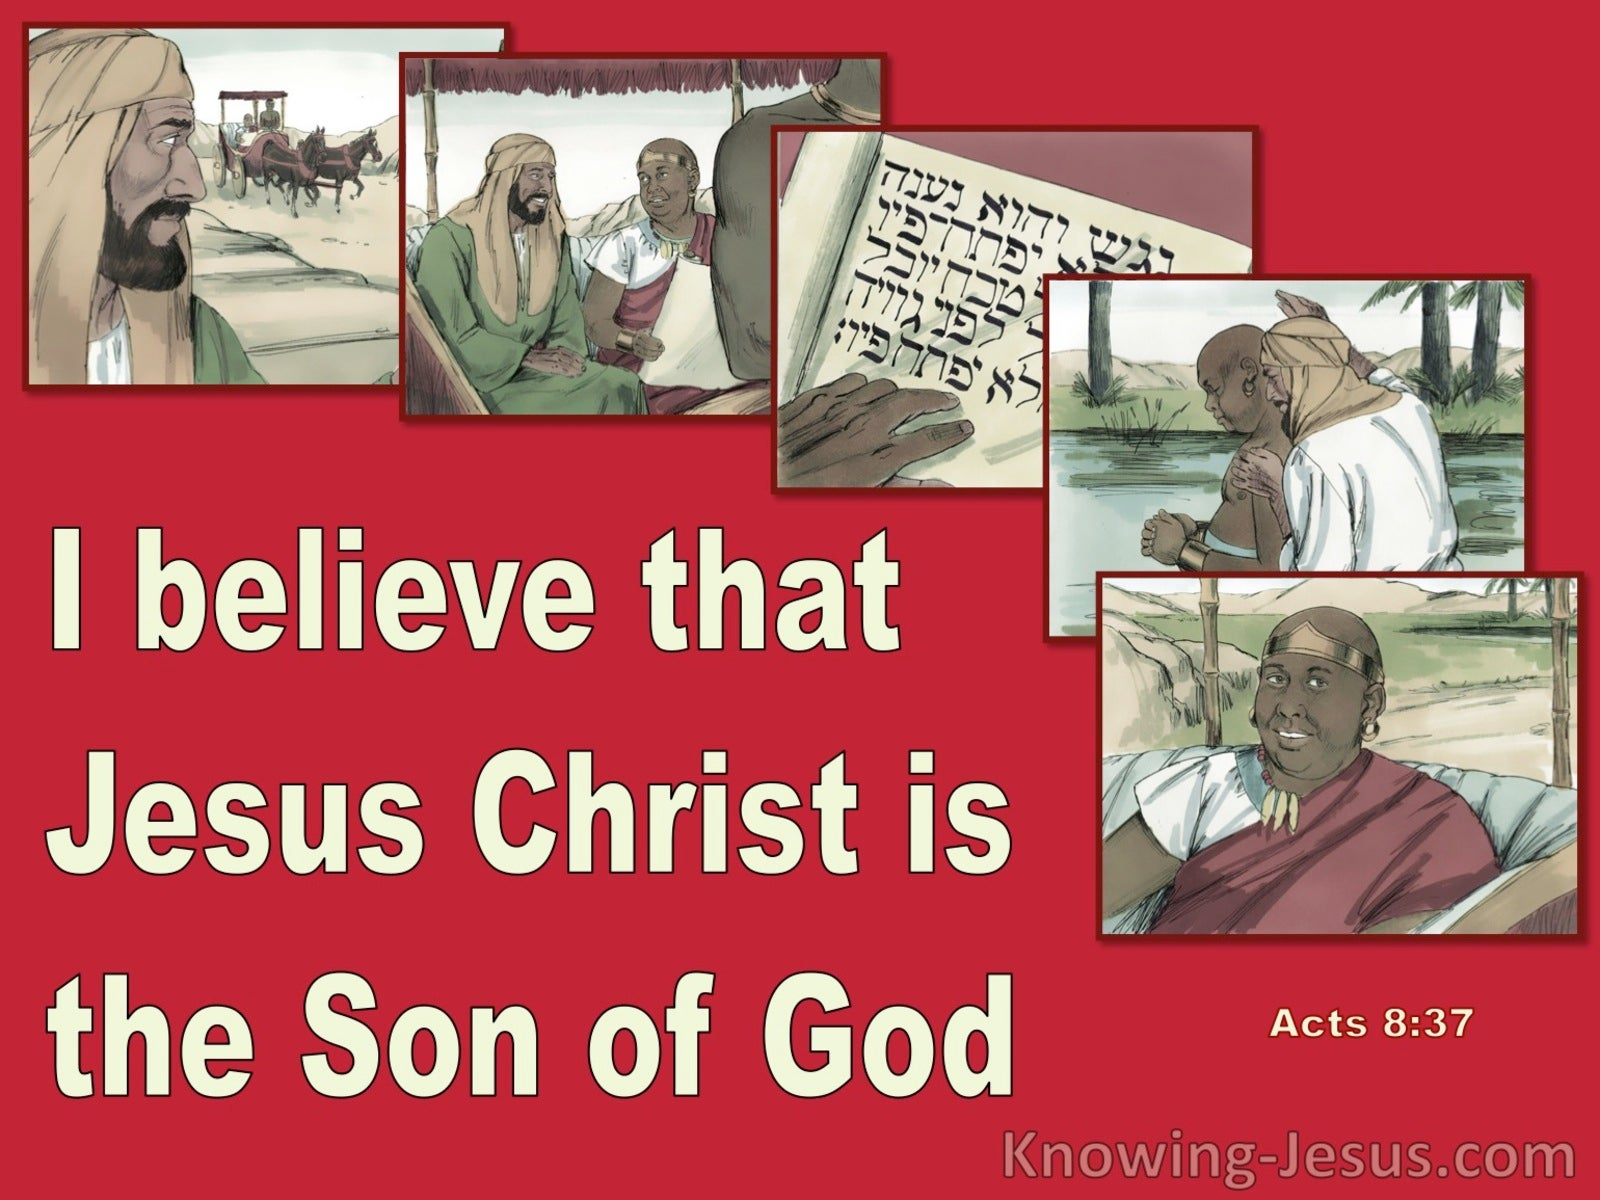 Acts 8:37 Jesus Christ Is The Son Of God (red)